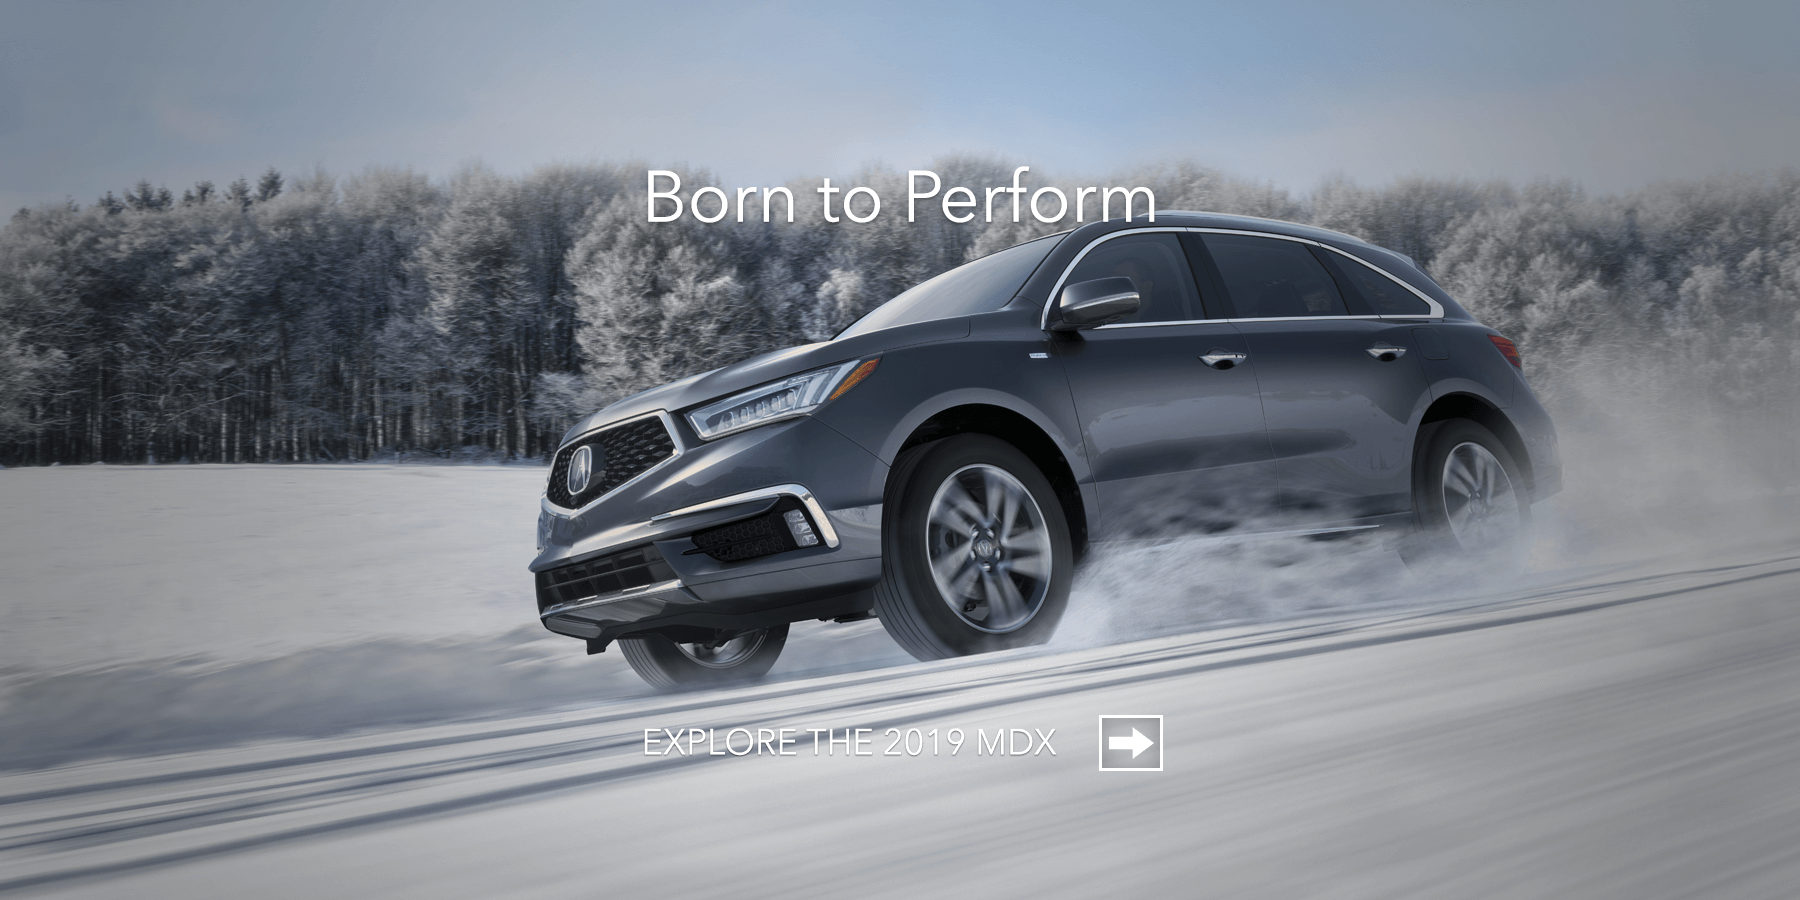 2019 Acura MDX Modern Steel Metallic Front Angle Snow HP Slide